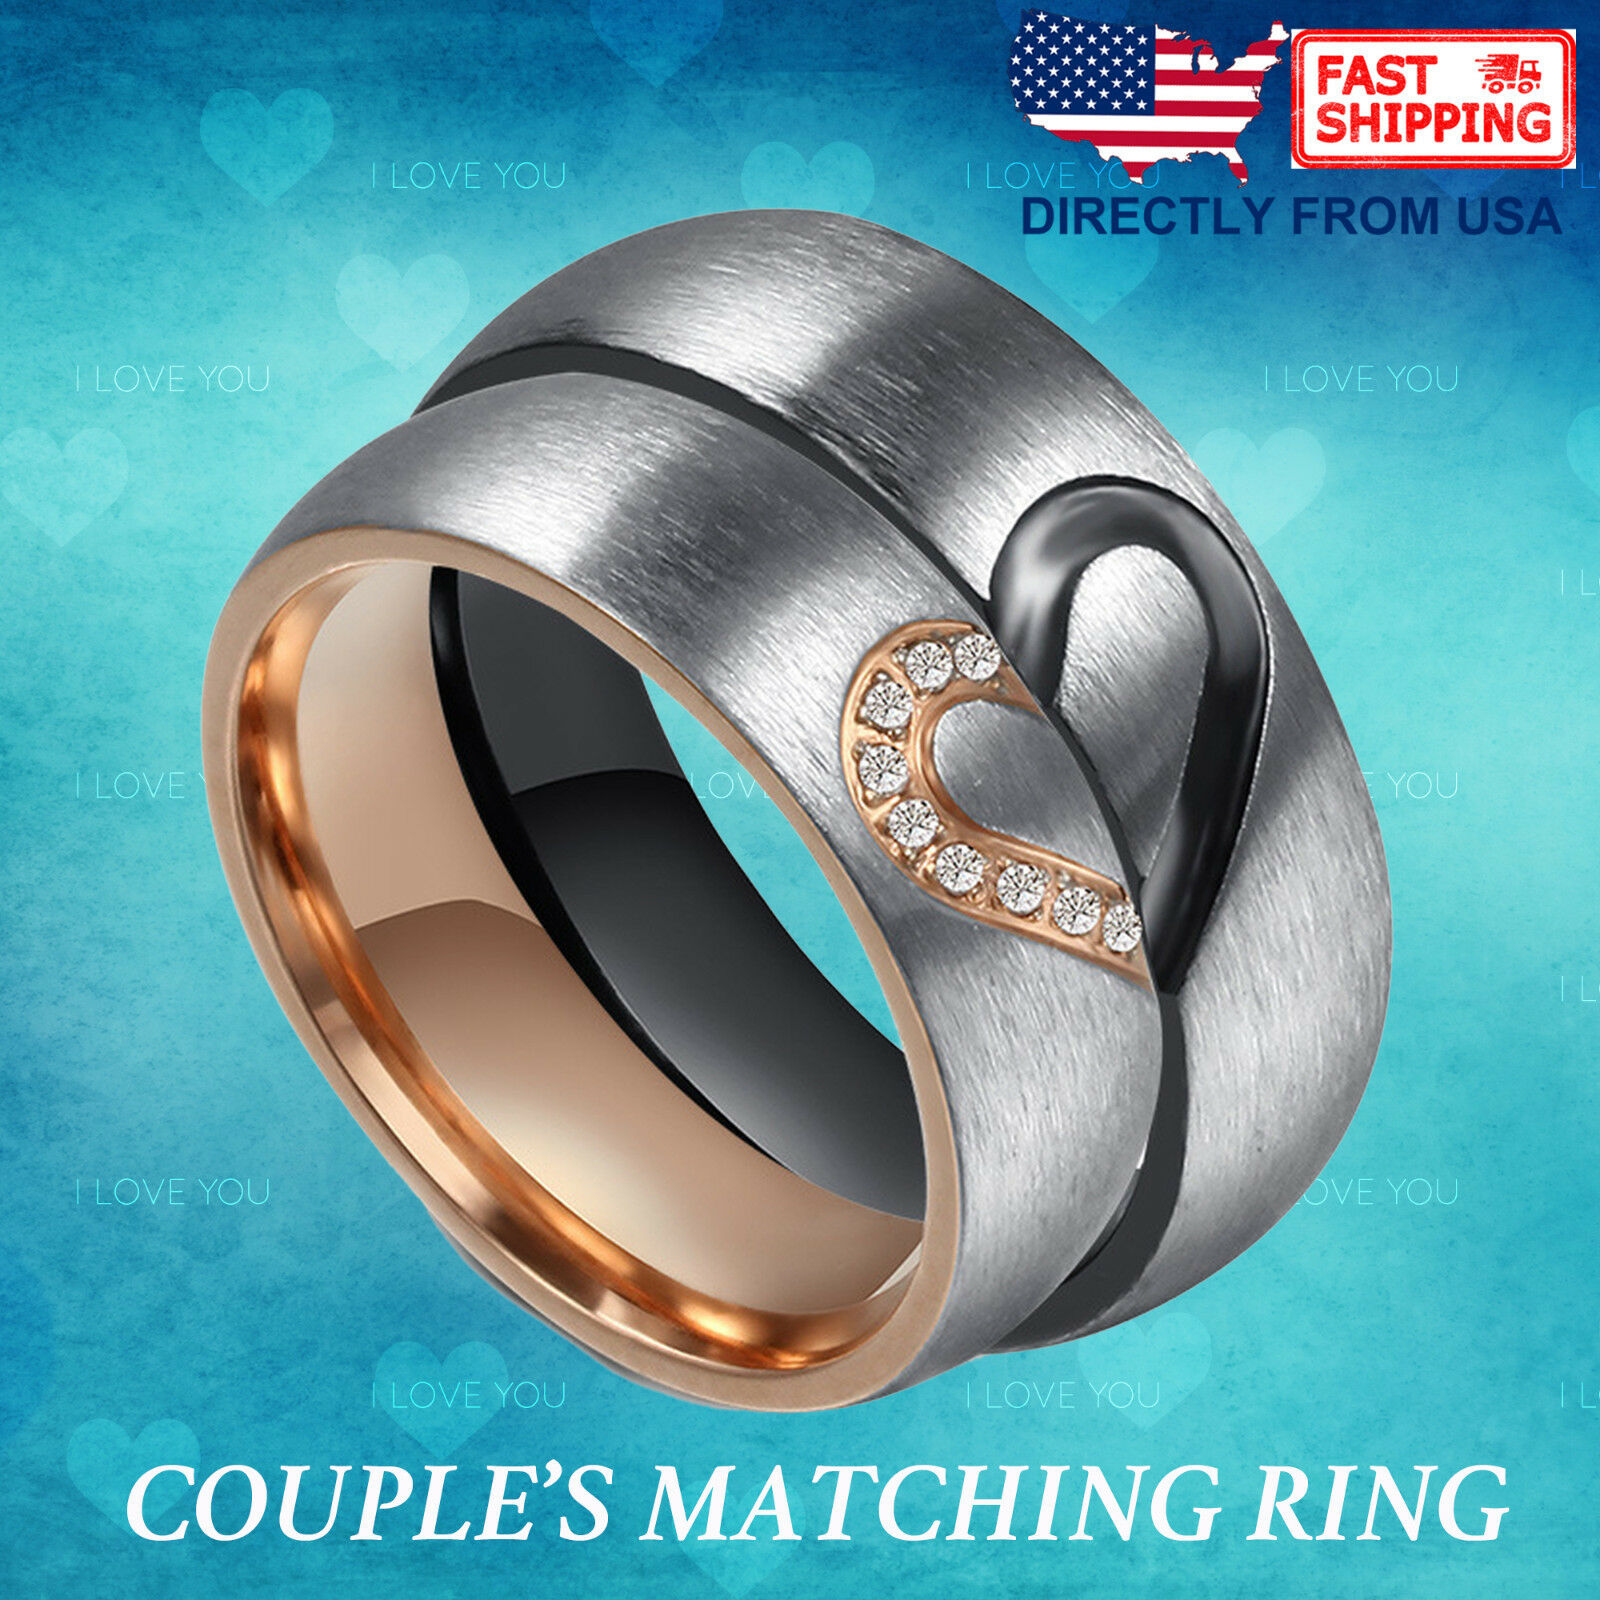 Couple's Matching Heart Ring, His or Hers Wedding Band Comfo